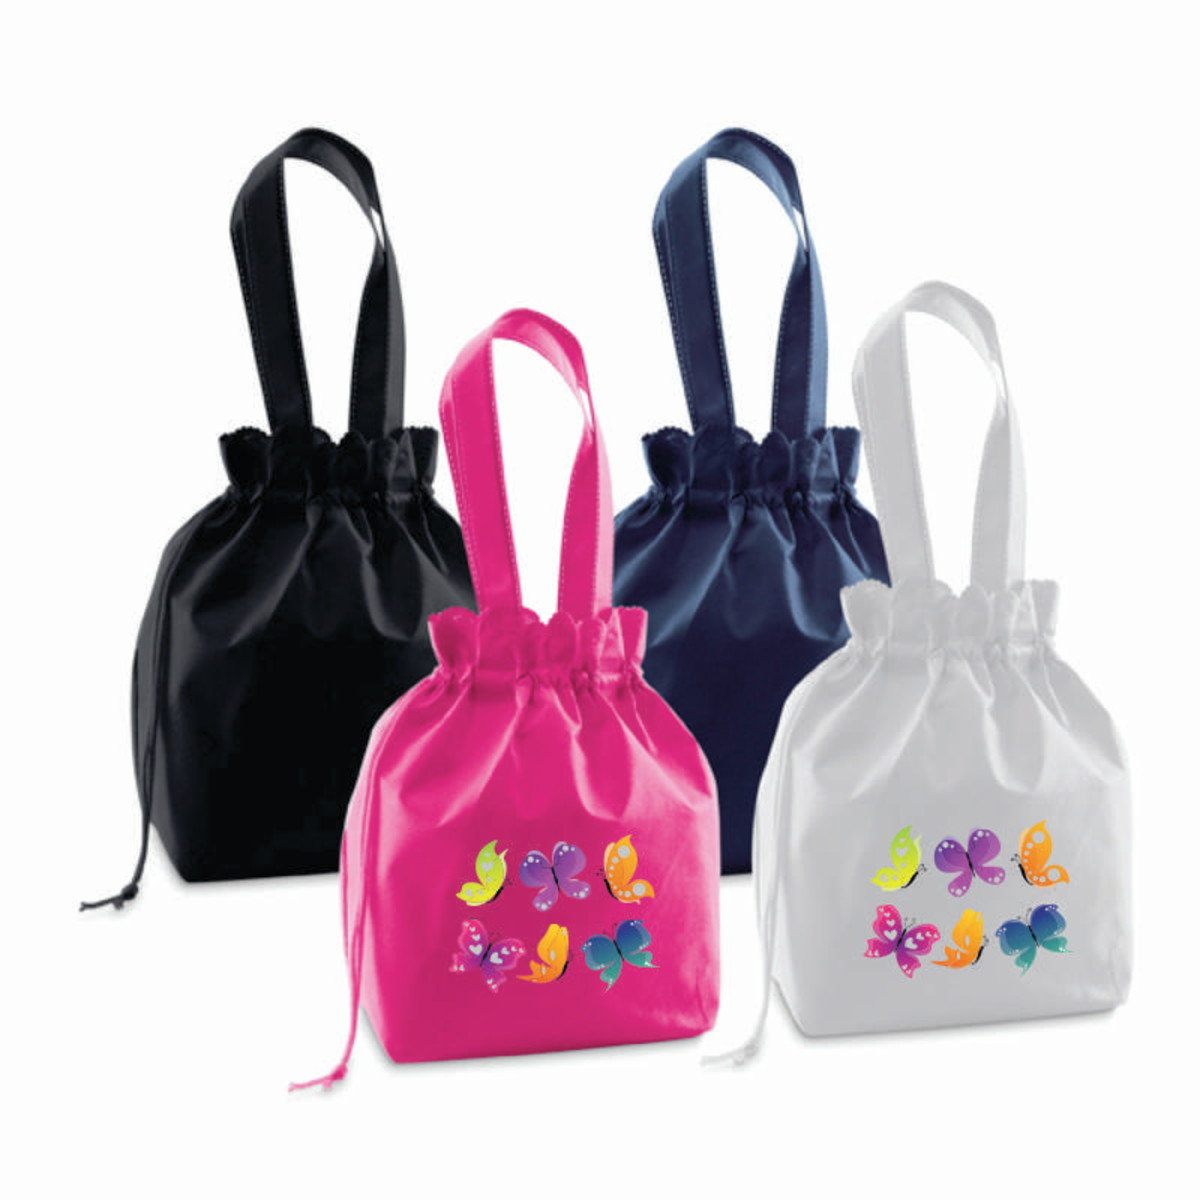 672a2f70c Bolsa multiuso personalizada de 30x27x12cm no Elo7 | Things For All ...